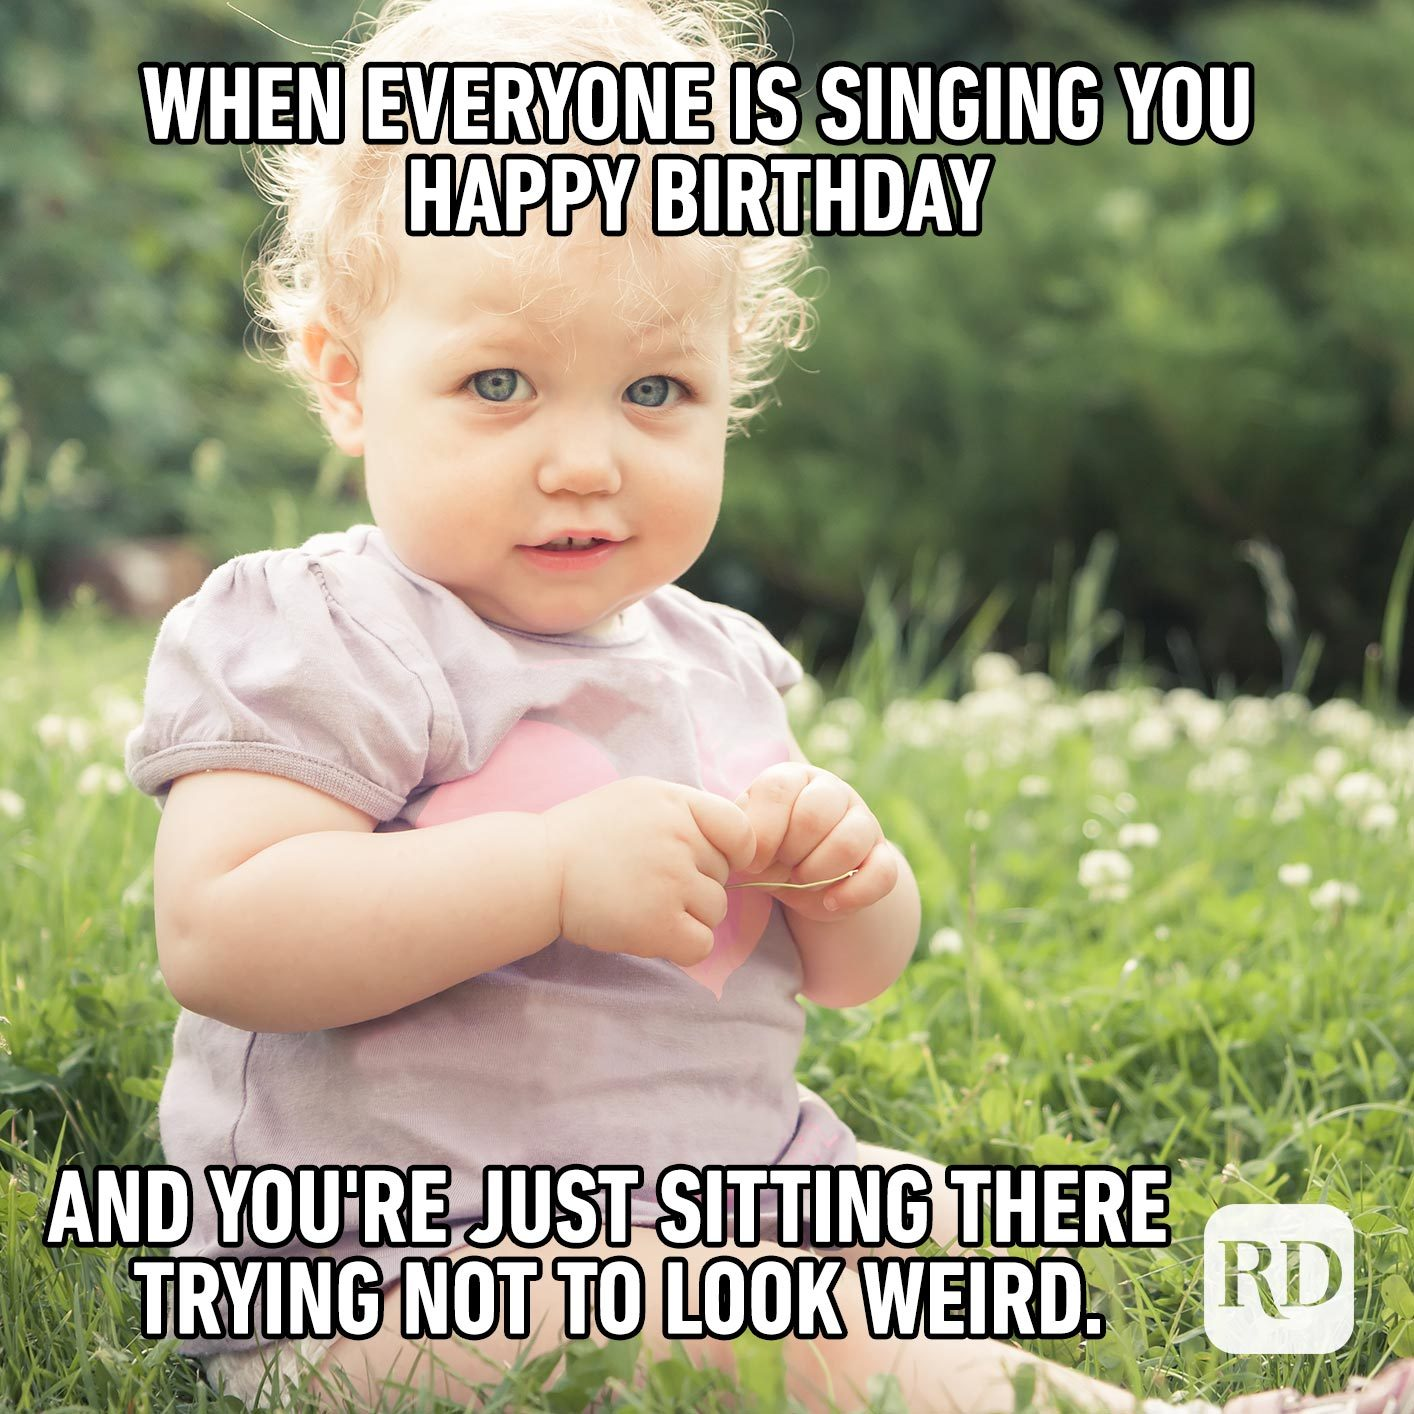 When everyone is singing you Happy Birthday and you're just sitting there trying not to look weird.